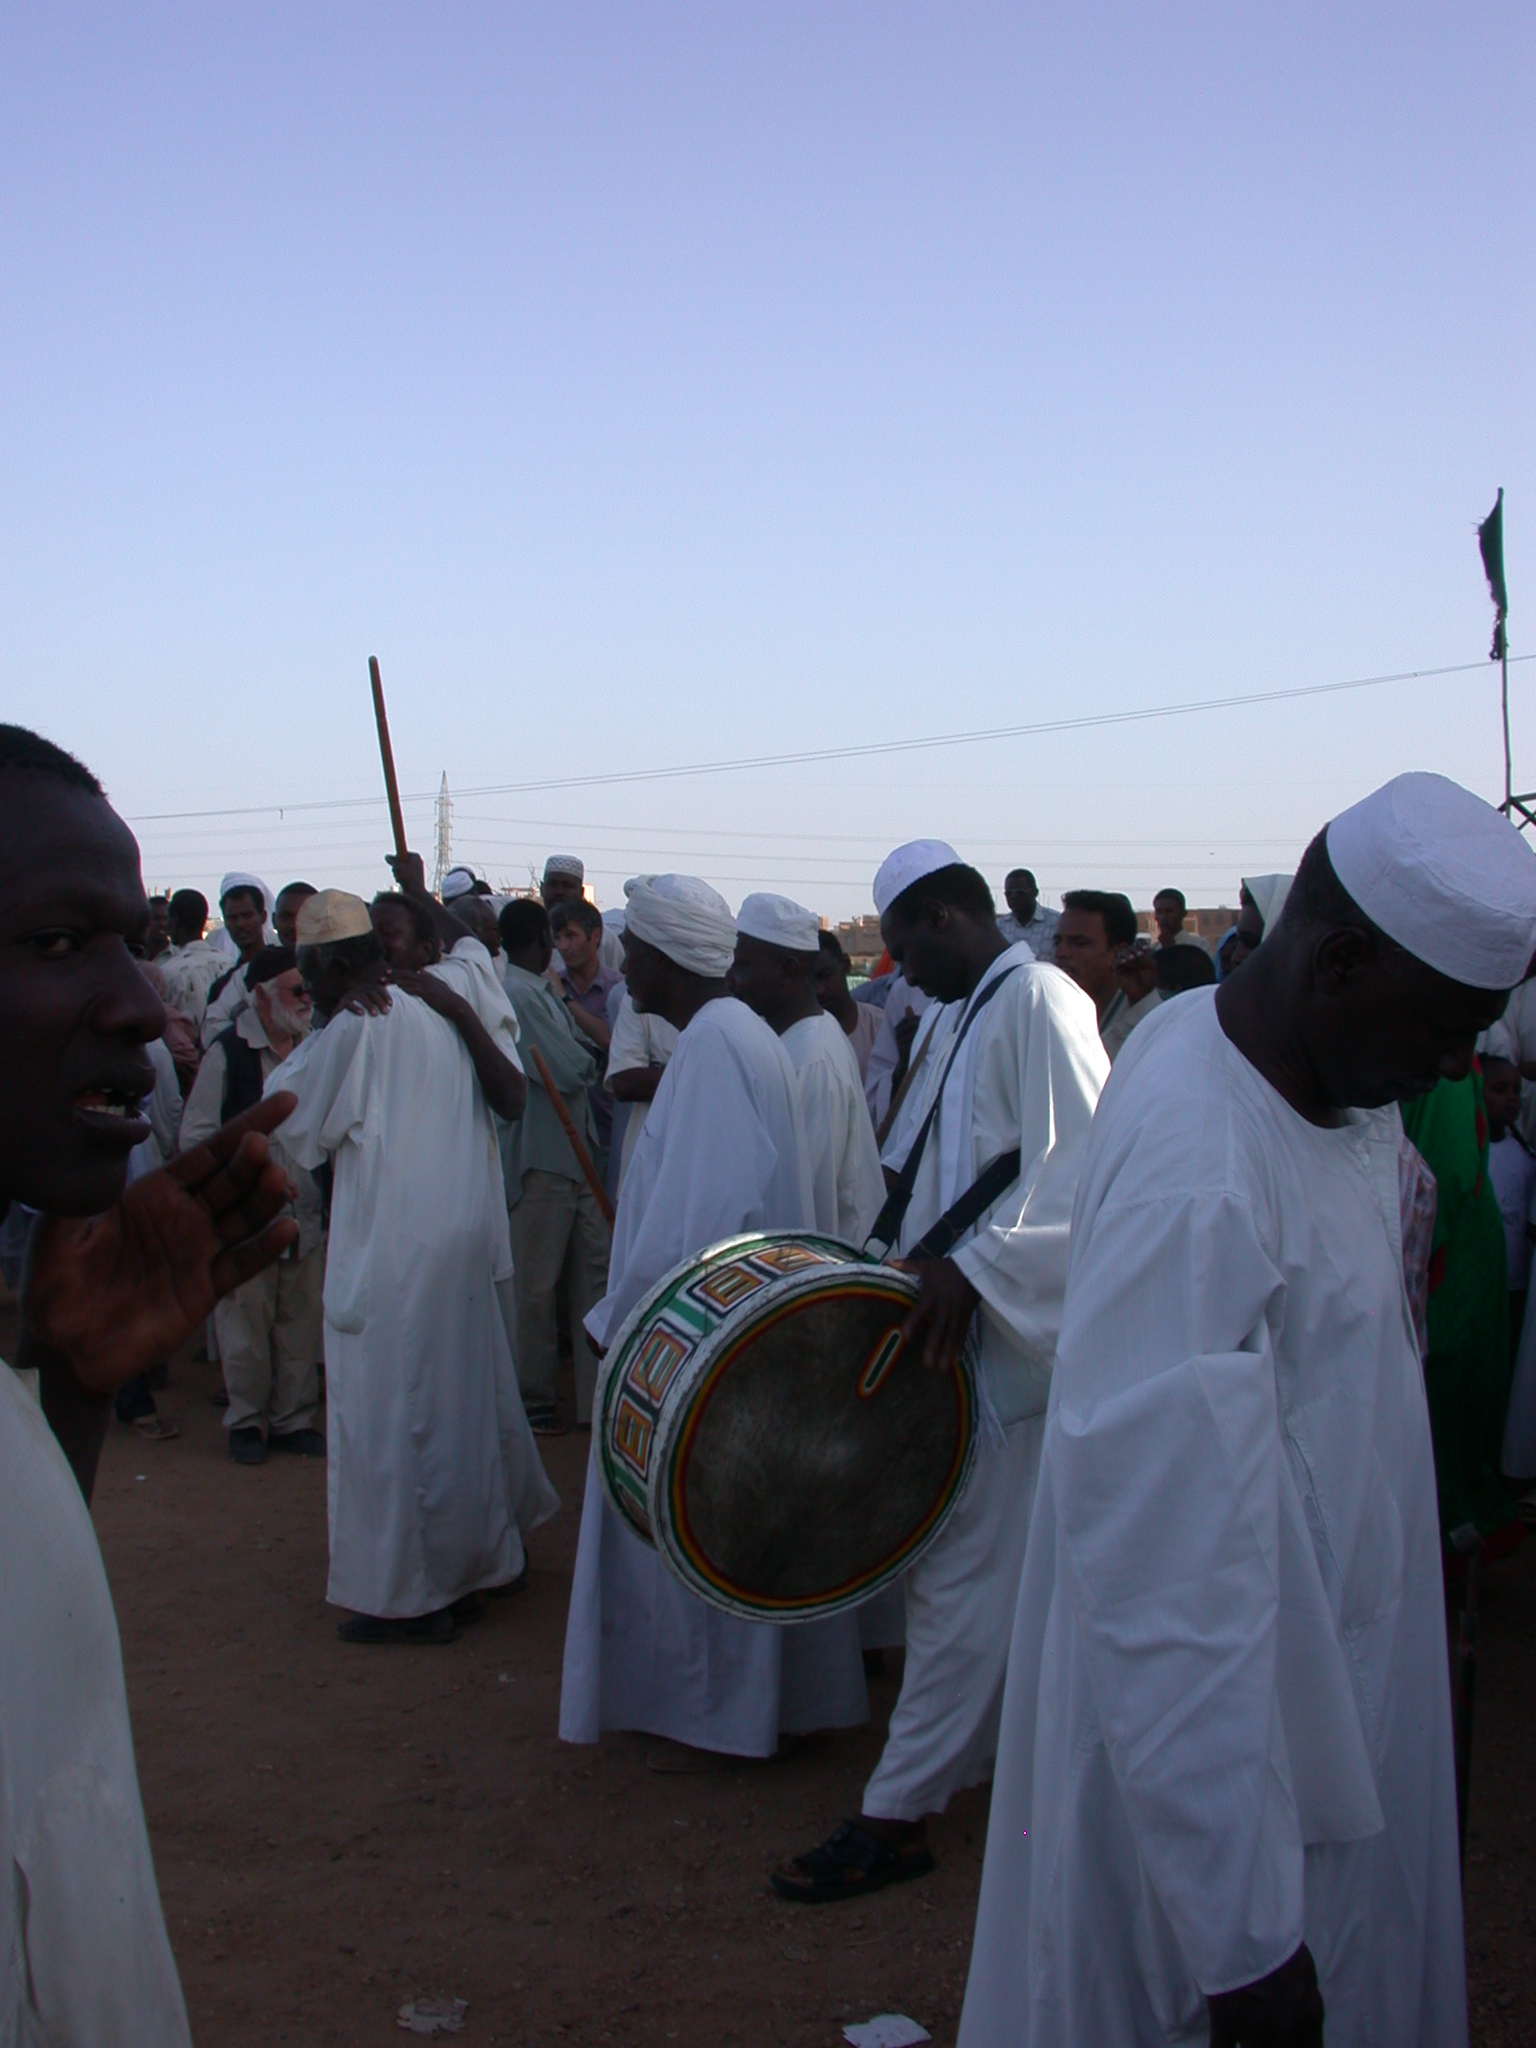 Ritual Drumming Starts at Sufi Dancing Site, Omdurman, Sudan